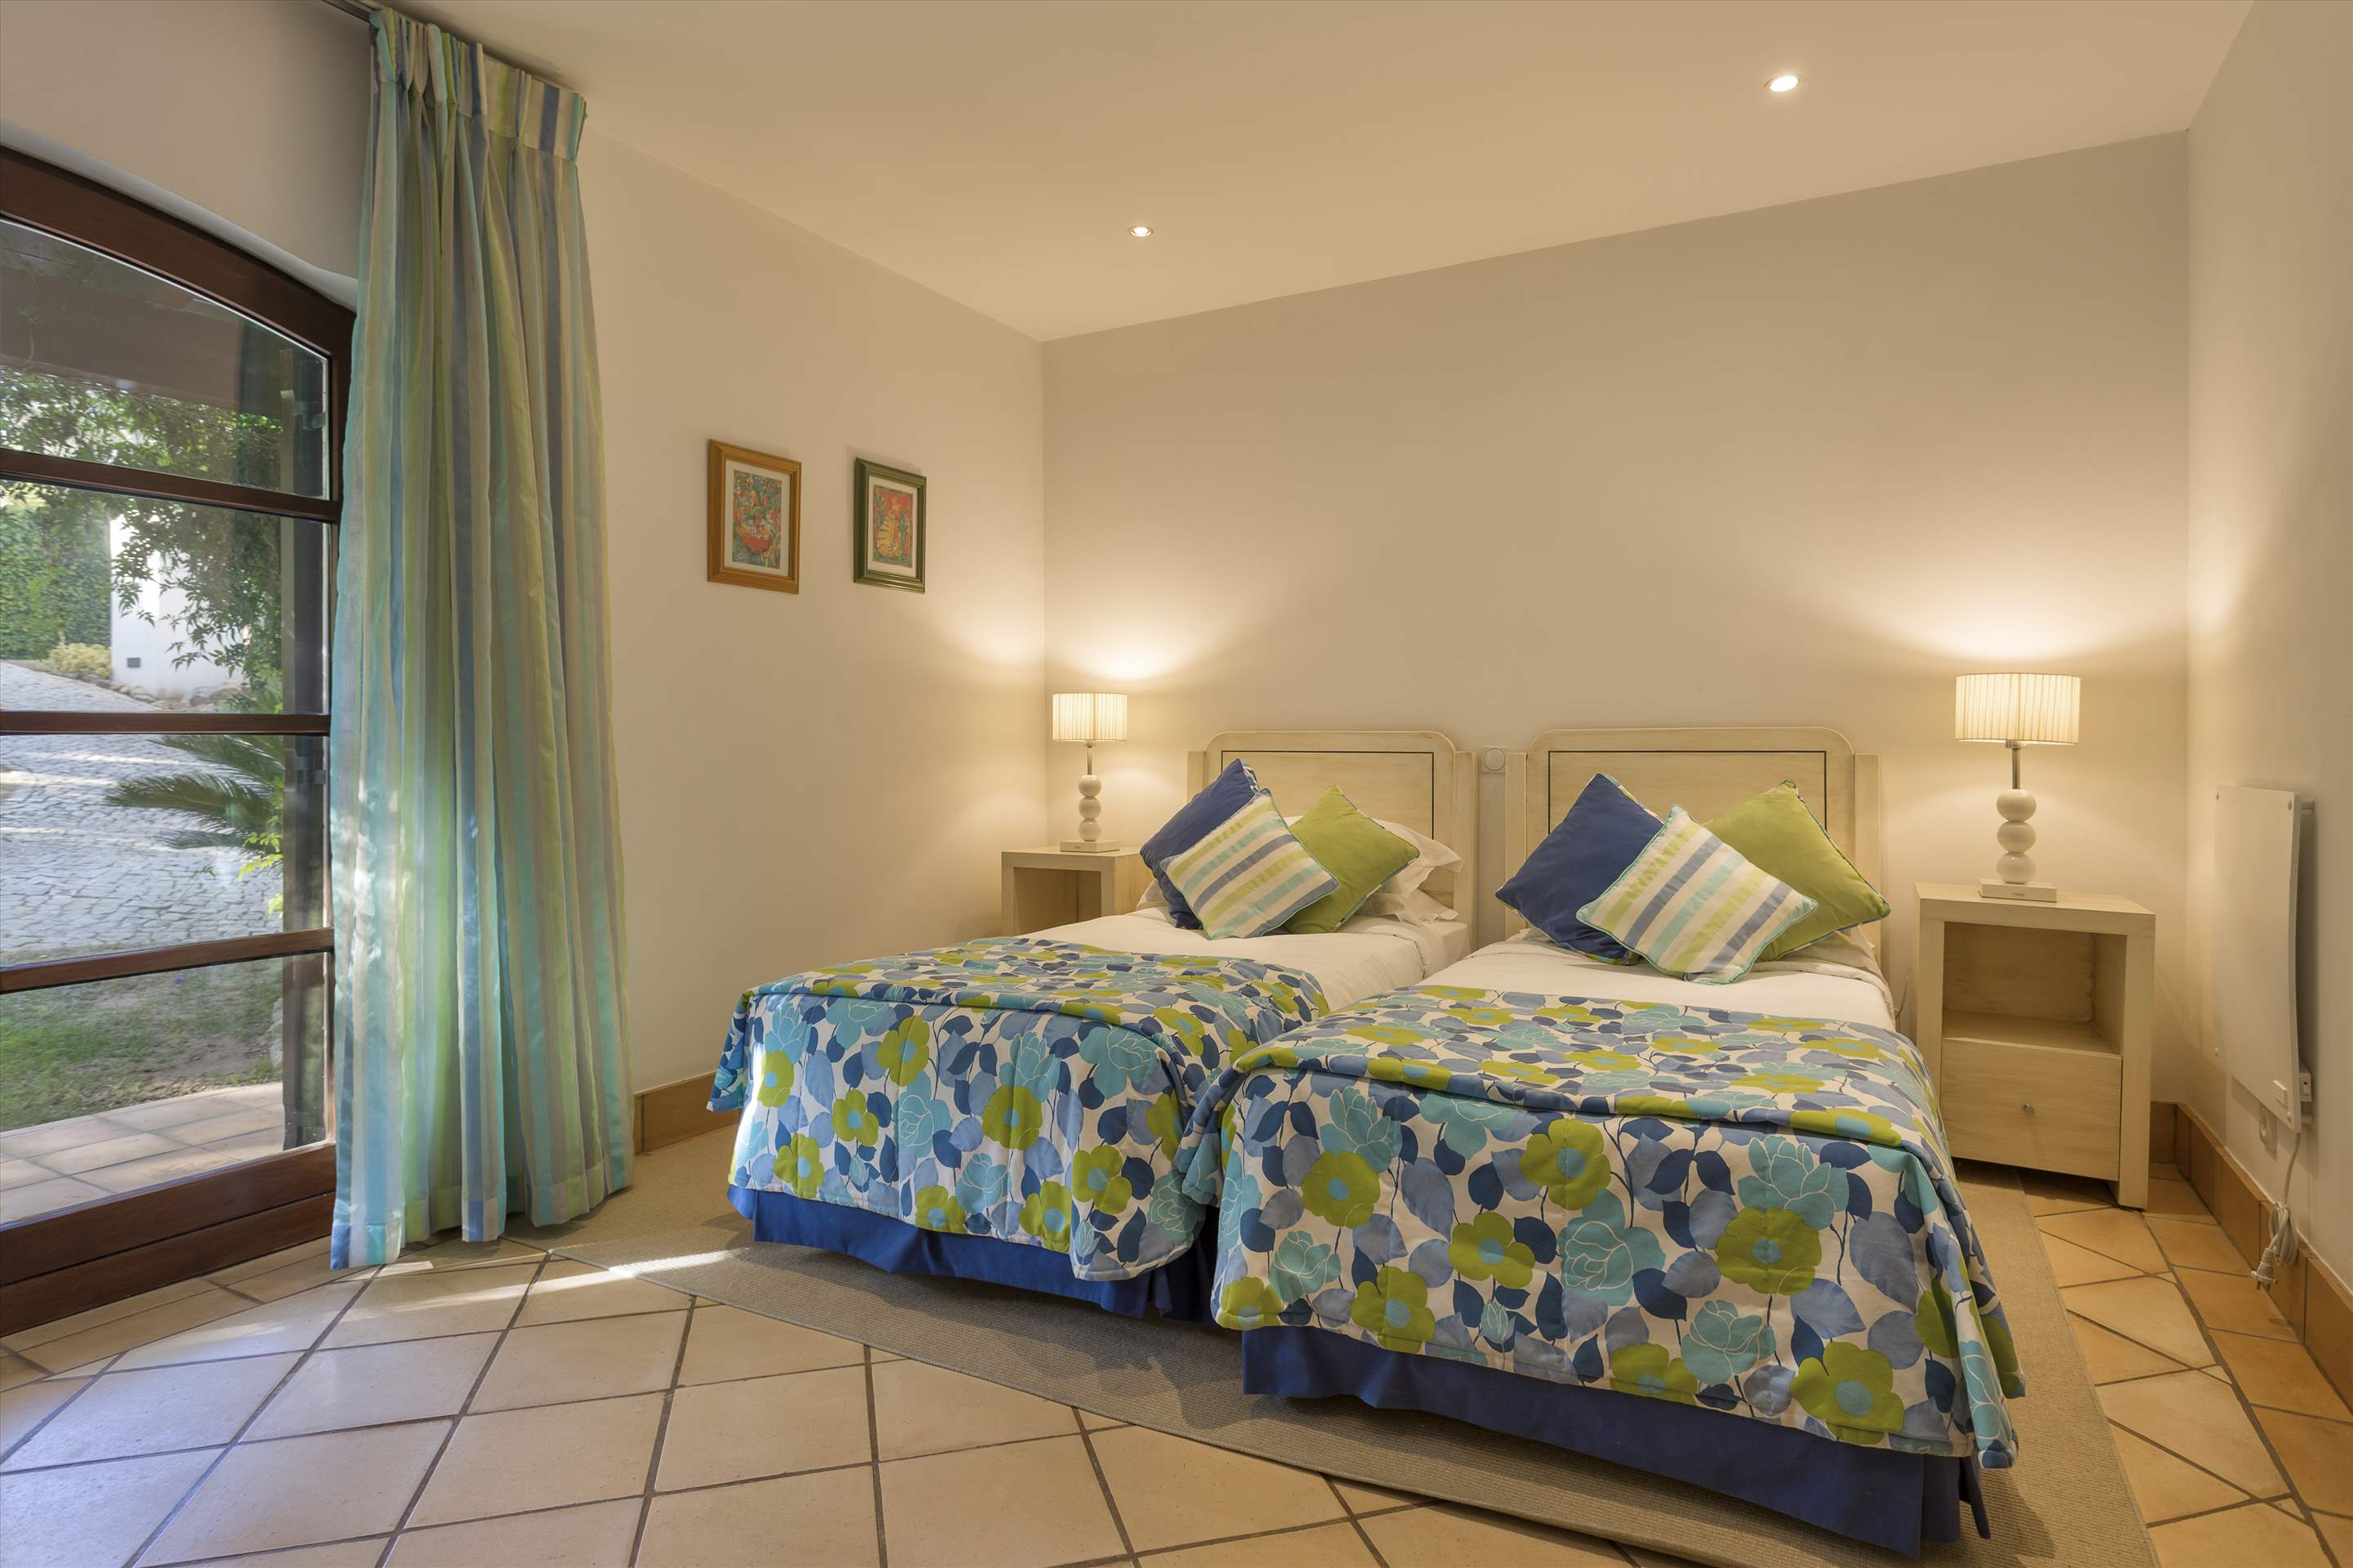 Pine Cliffs Villa Aurora, 4 bedroom villa in Pine Cliffs Resort, Algarve Photo #9